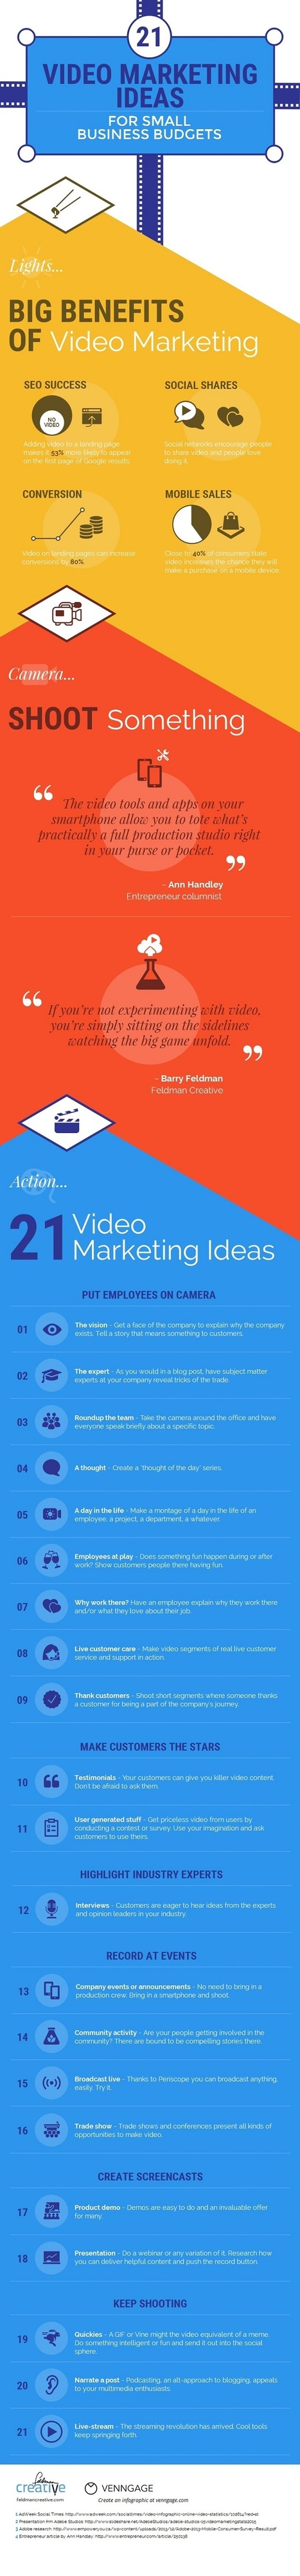 21 Video Marketing Ideas for Small-Business Budgets #Infographic | Design, social media and web resources | Scoop.it